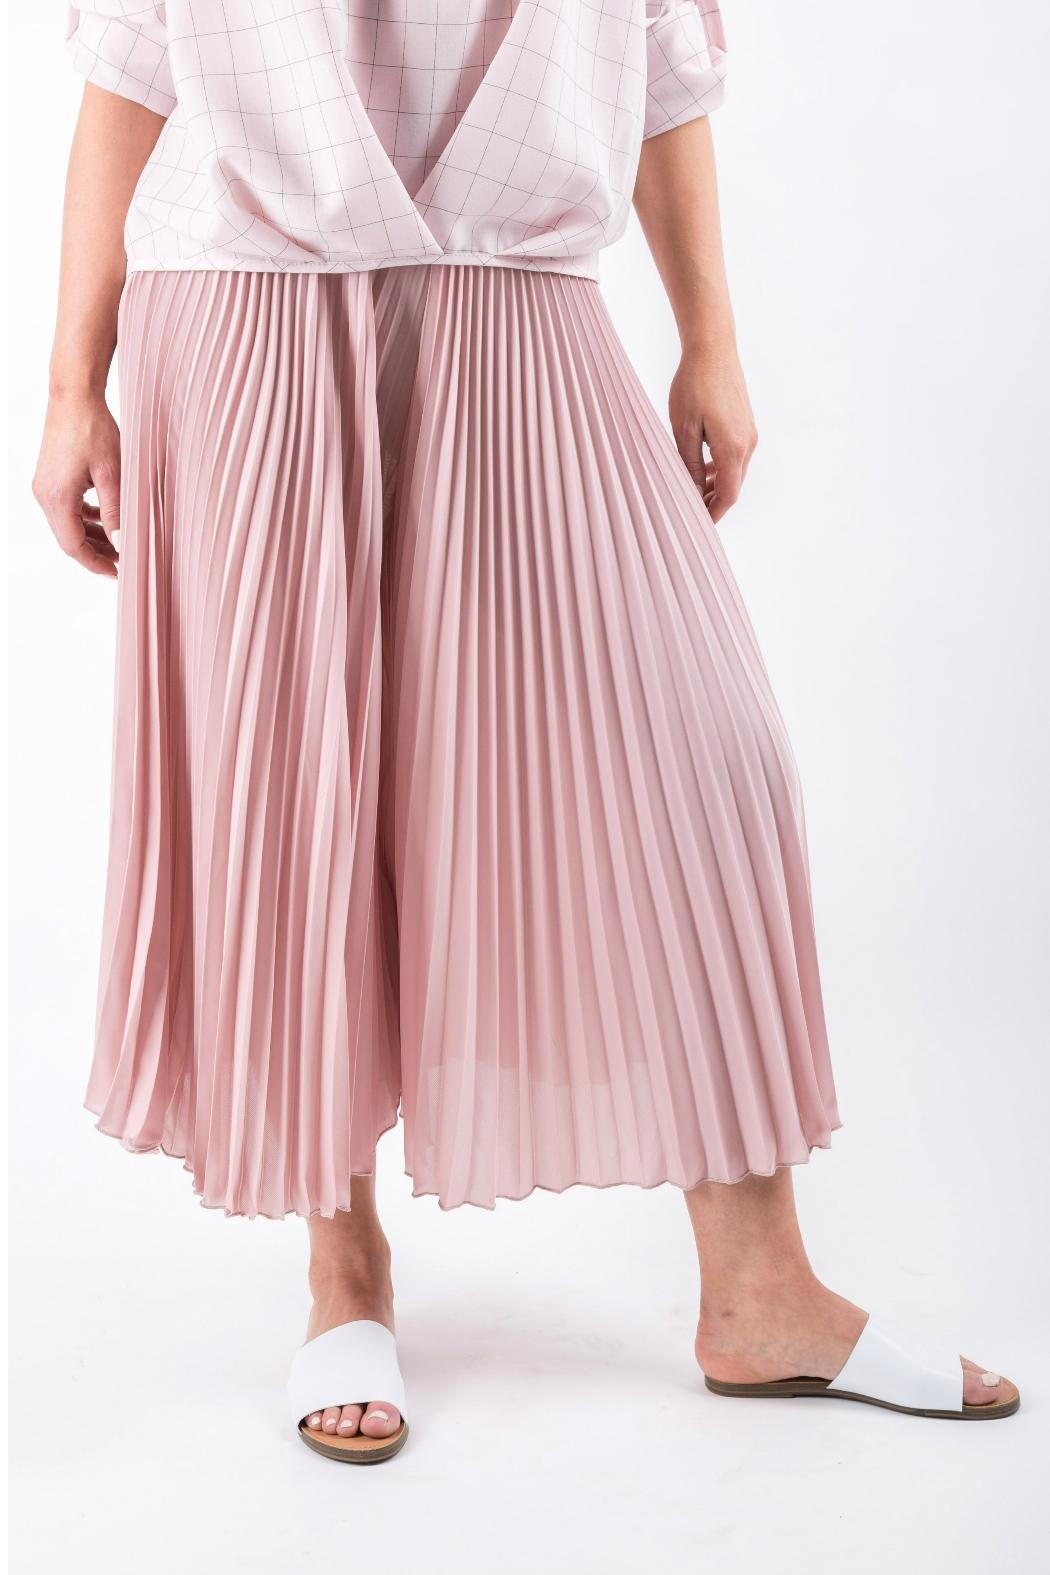 Yuki Tokyo Pleated Wide Culottes - Front Cropped Image